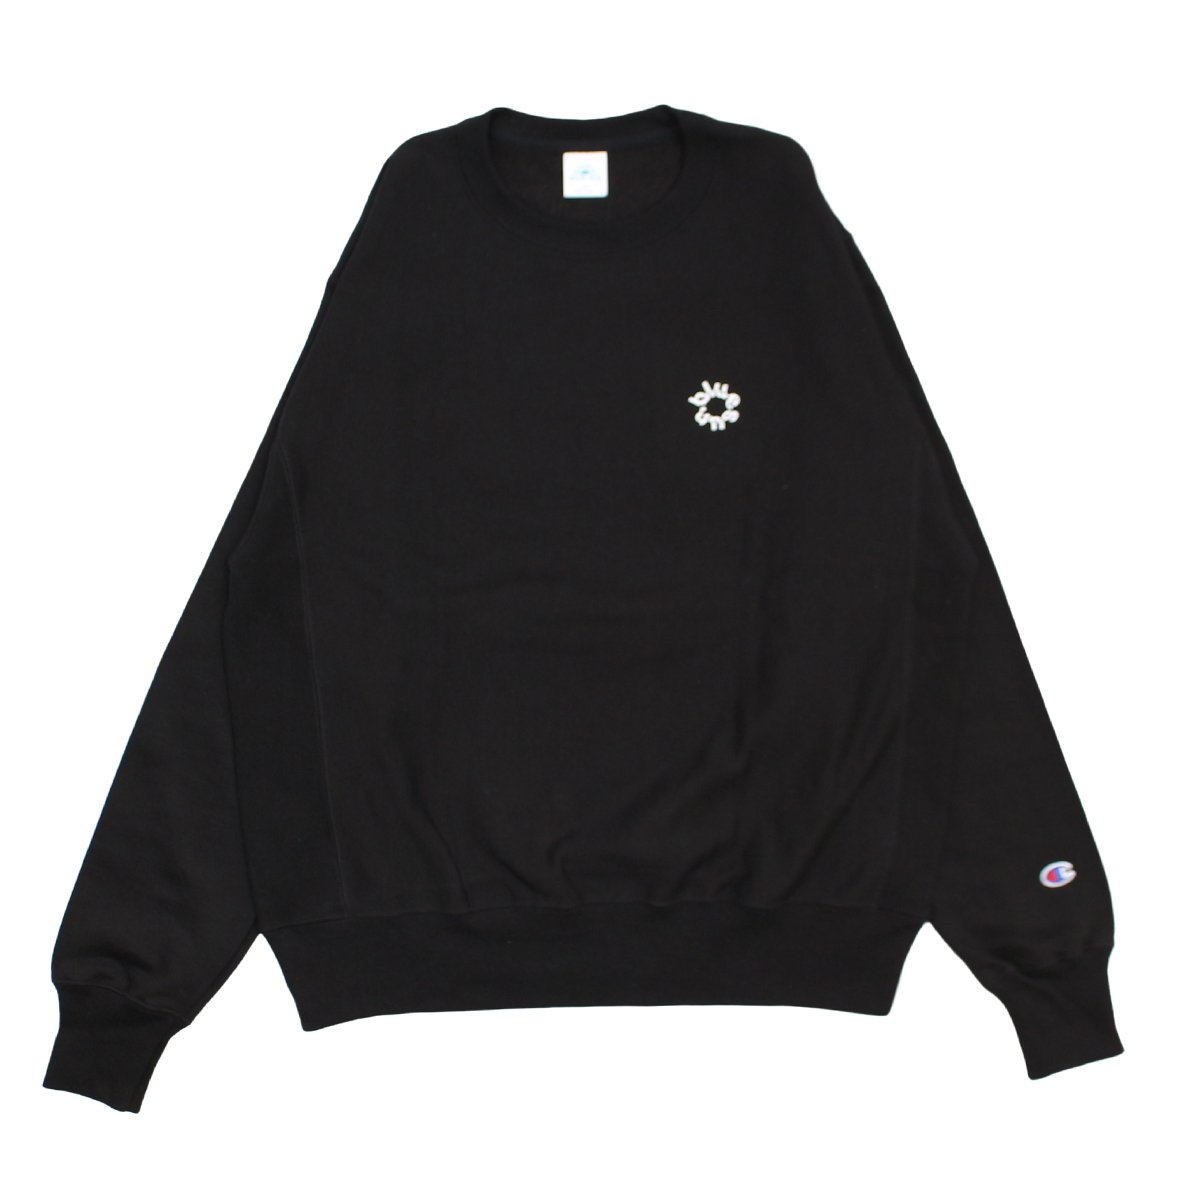 TWIST CREWNECK SWEATSHIRT 【BLACK】